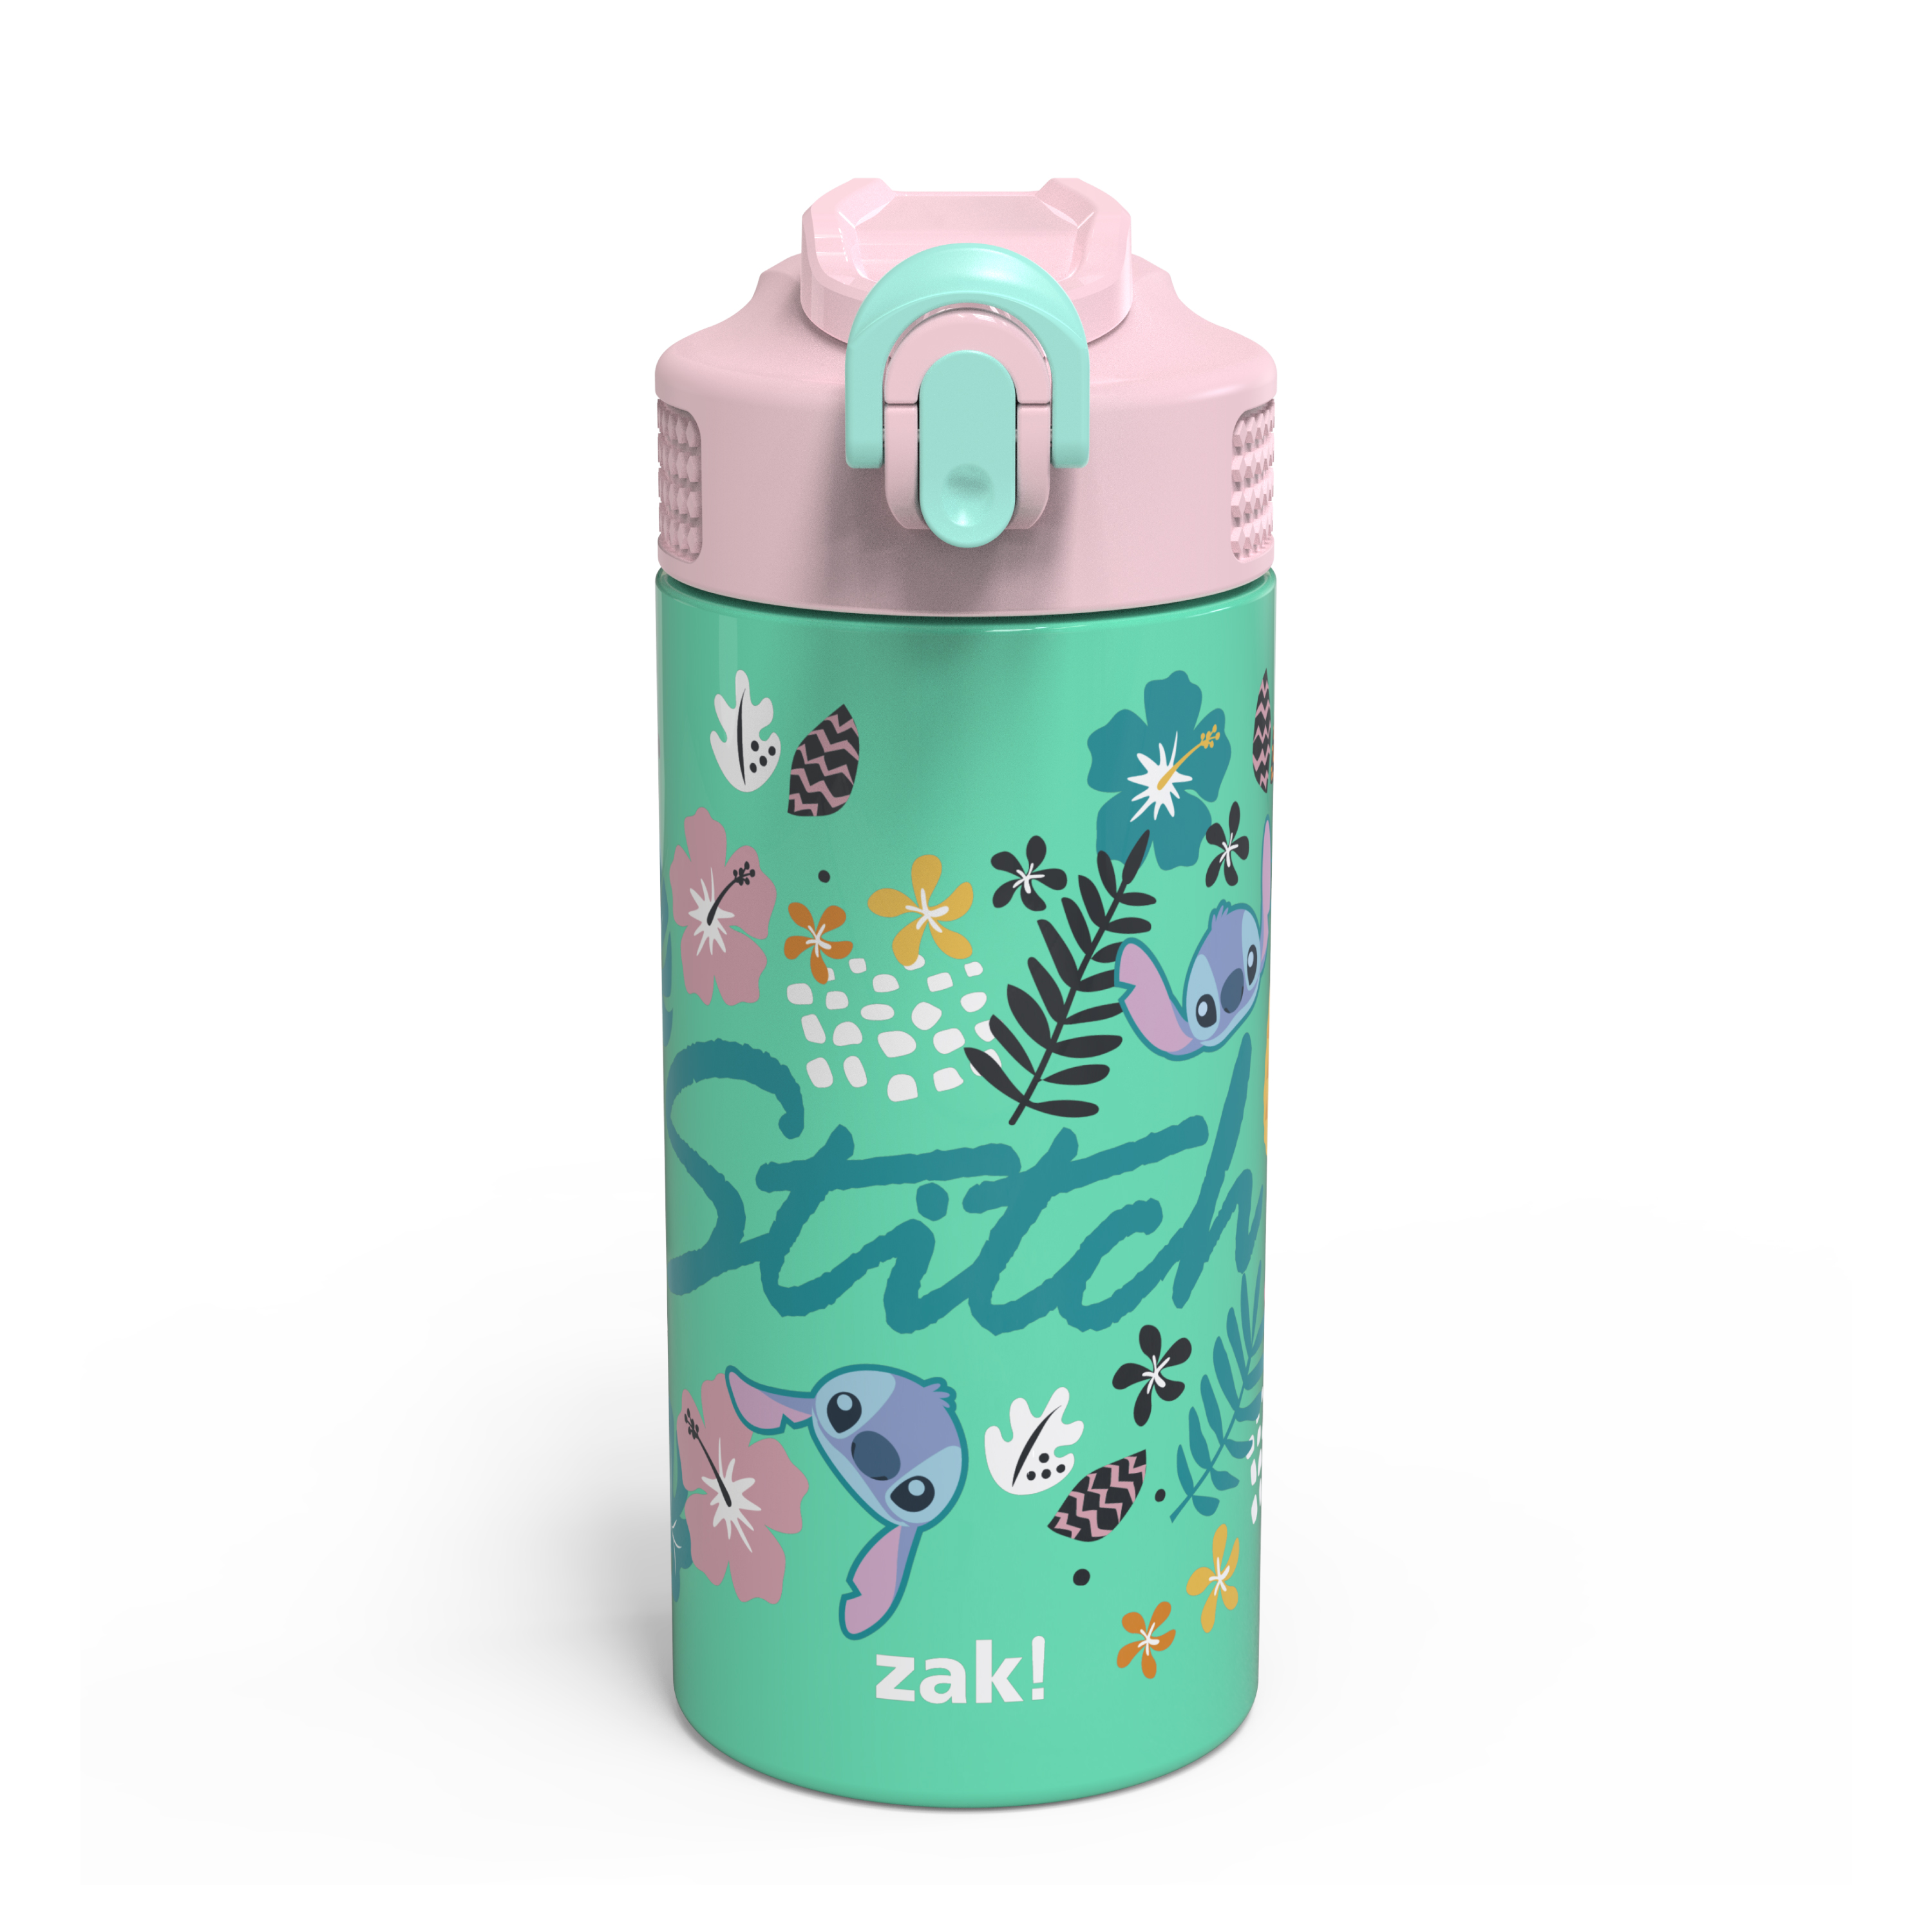 Disney 14 ounce Stainless Steel Vacuum Insulated Water Bottle, Lilo and Stitch slideshow image 1